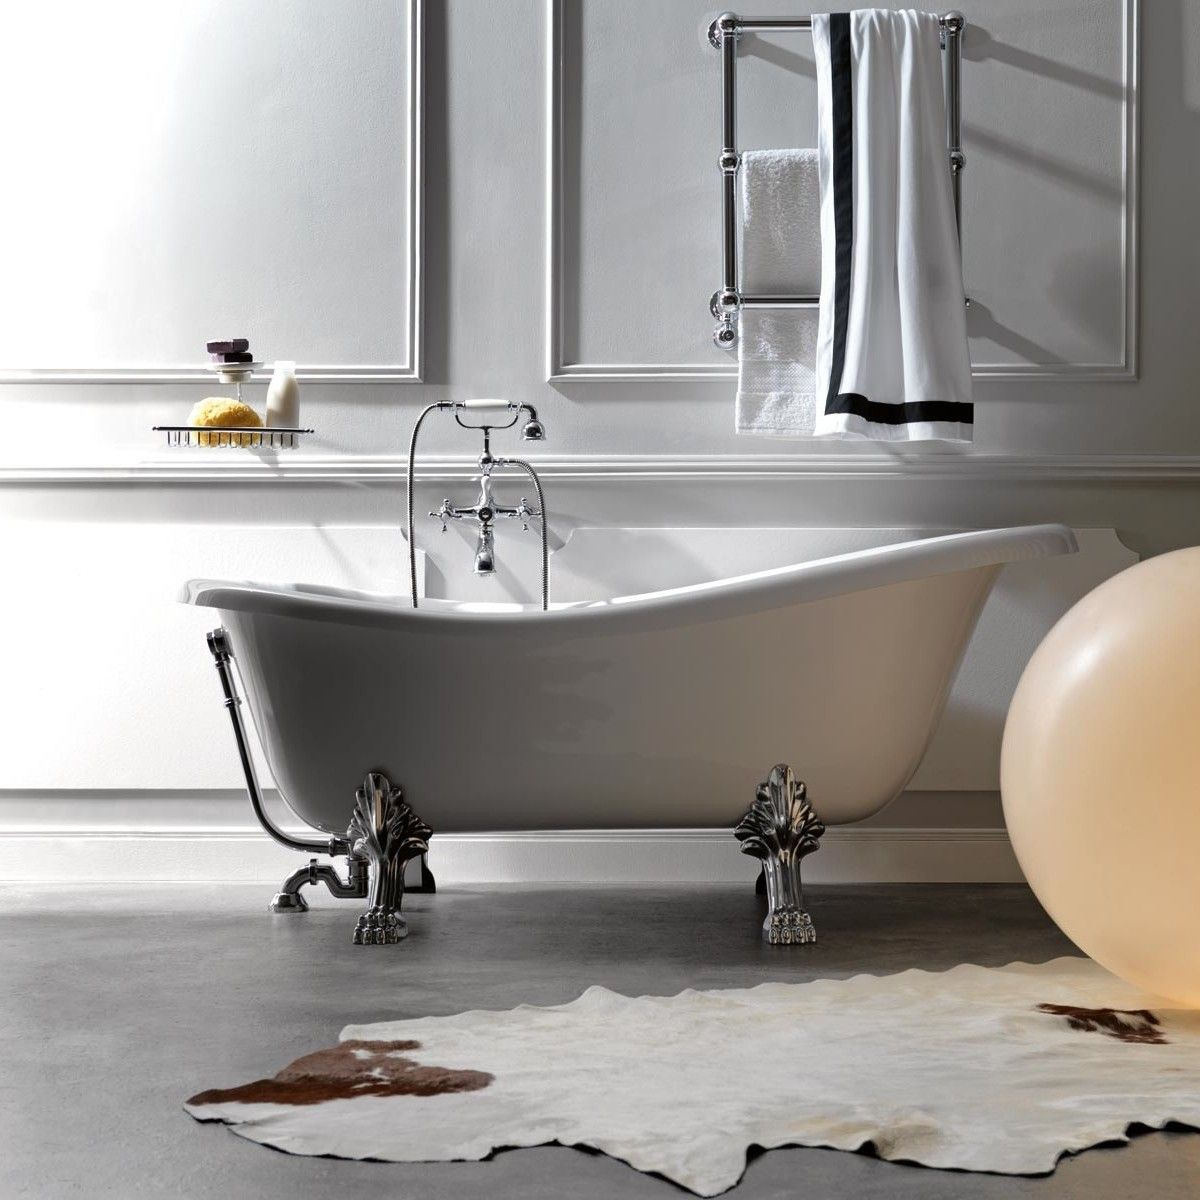 Retro 1051 Glass Resin Bathtub In White with Metal Feet From the ...